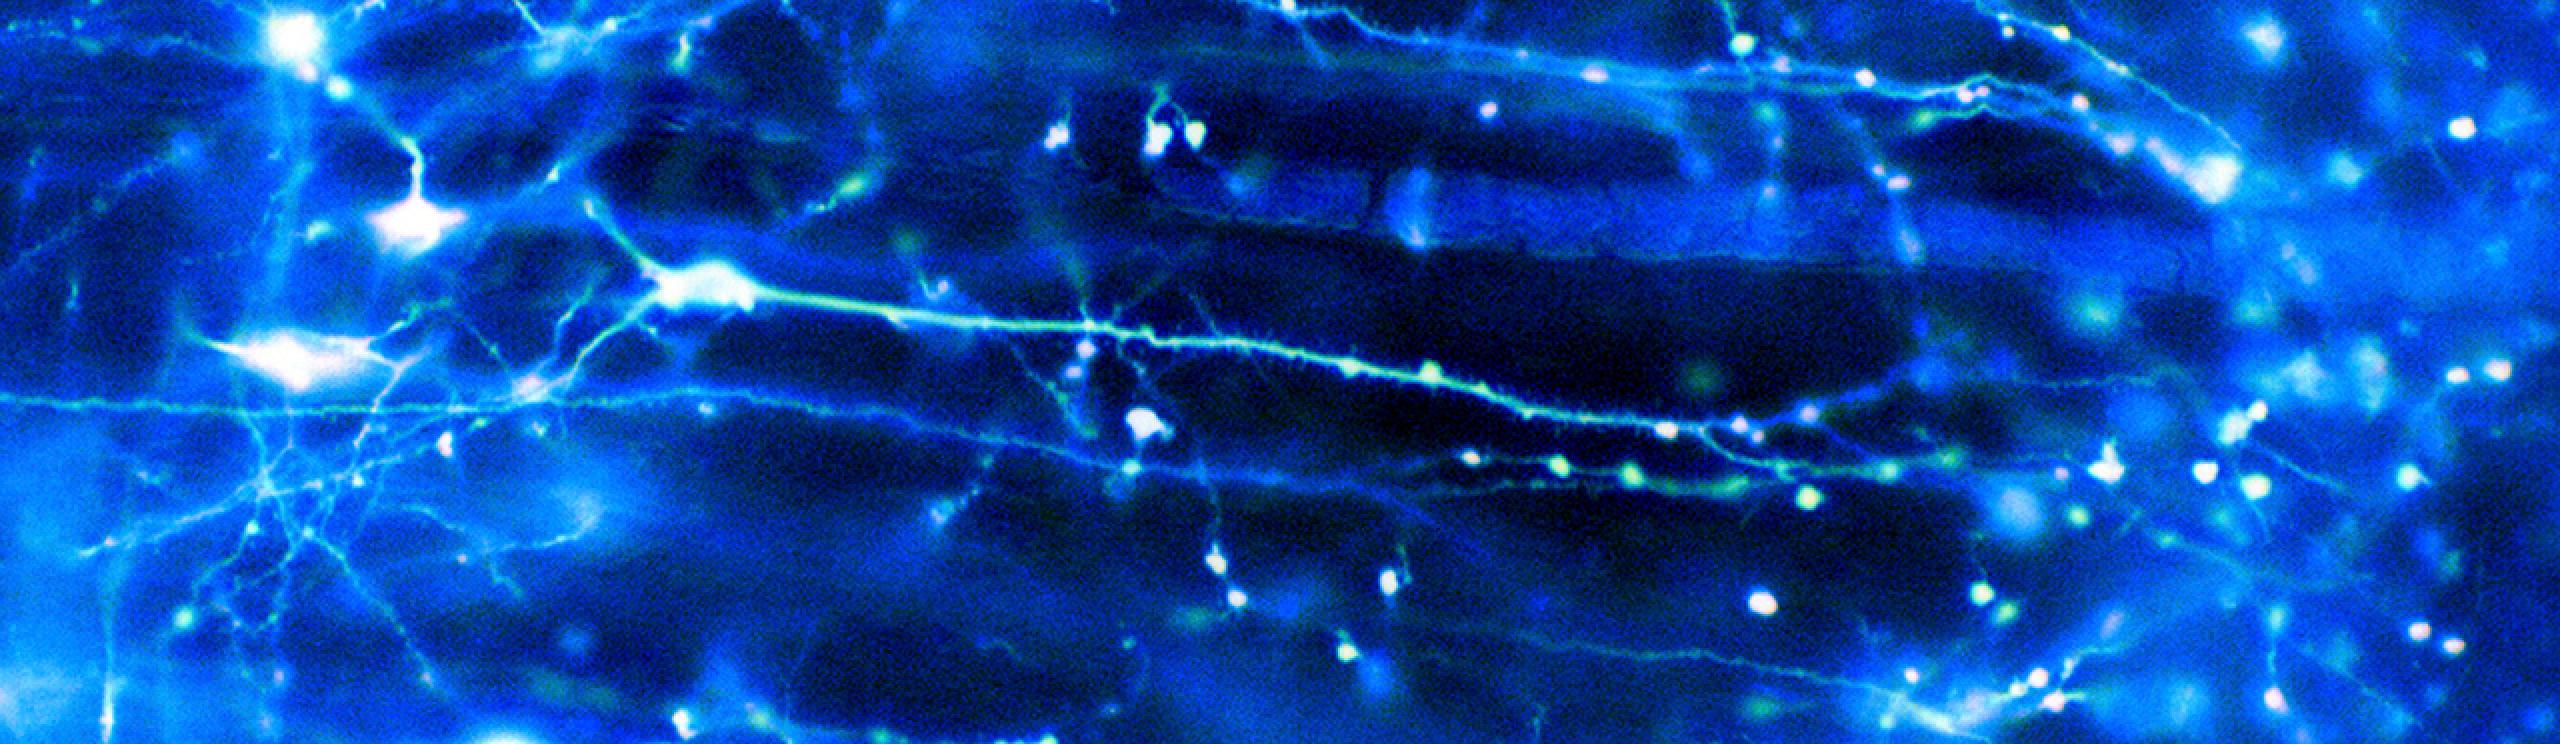 Neurons in the brain. Credit: Dr Jonathan Clarke (CC-BY-4.0)